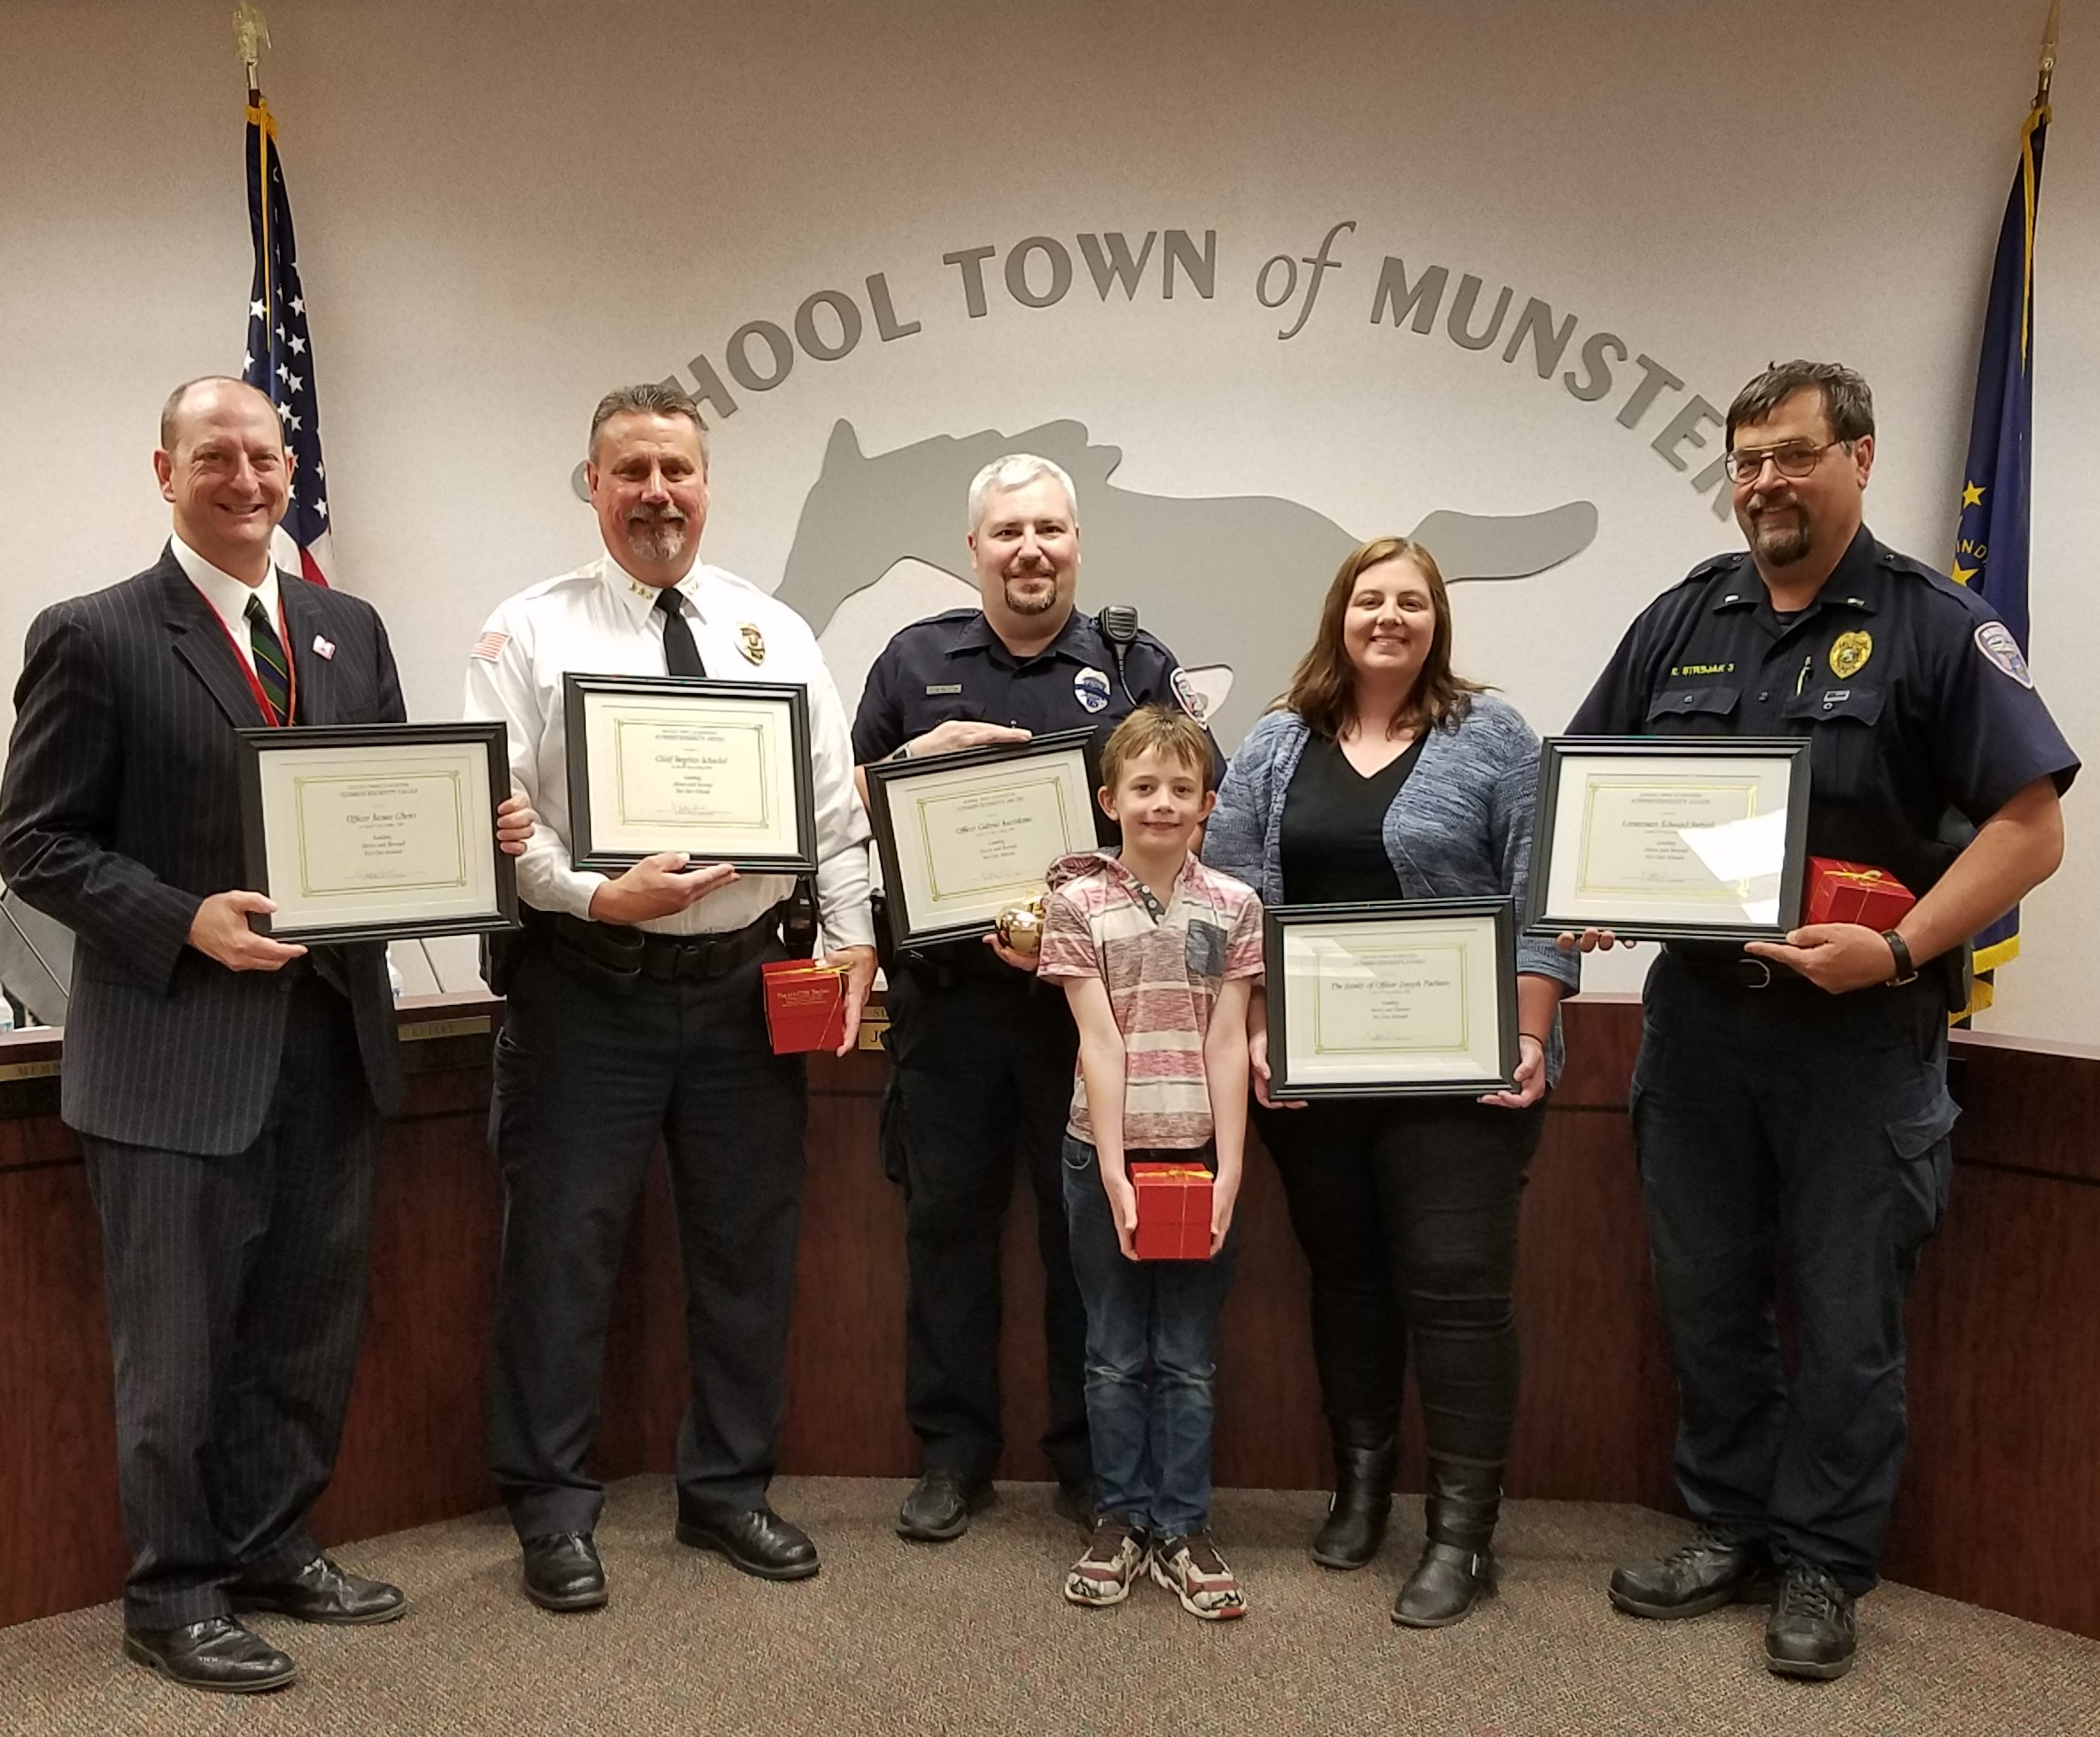 Munster Police Department and Joe Pacheco's Family